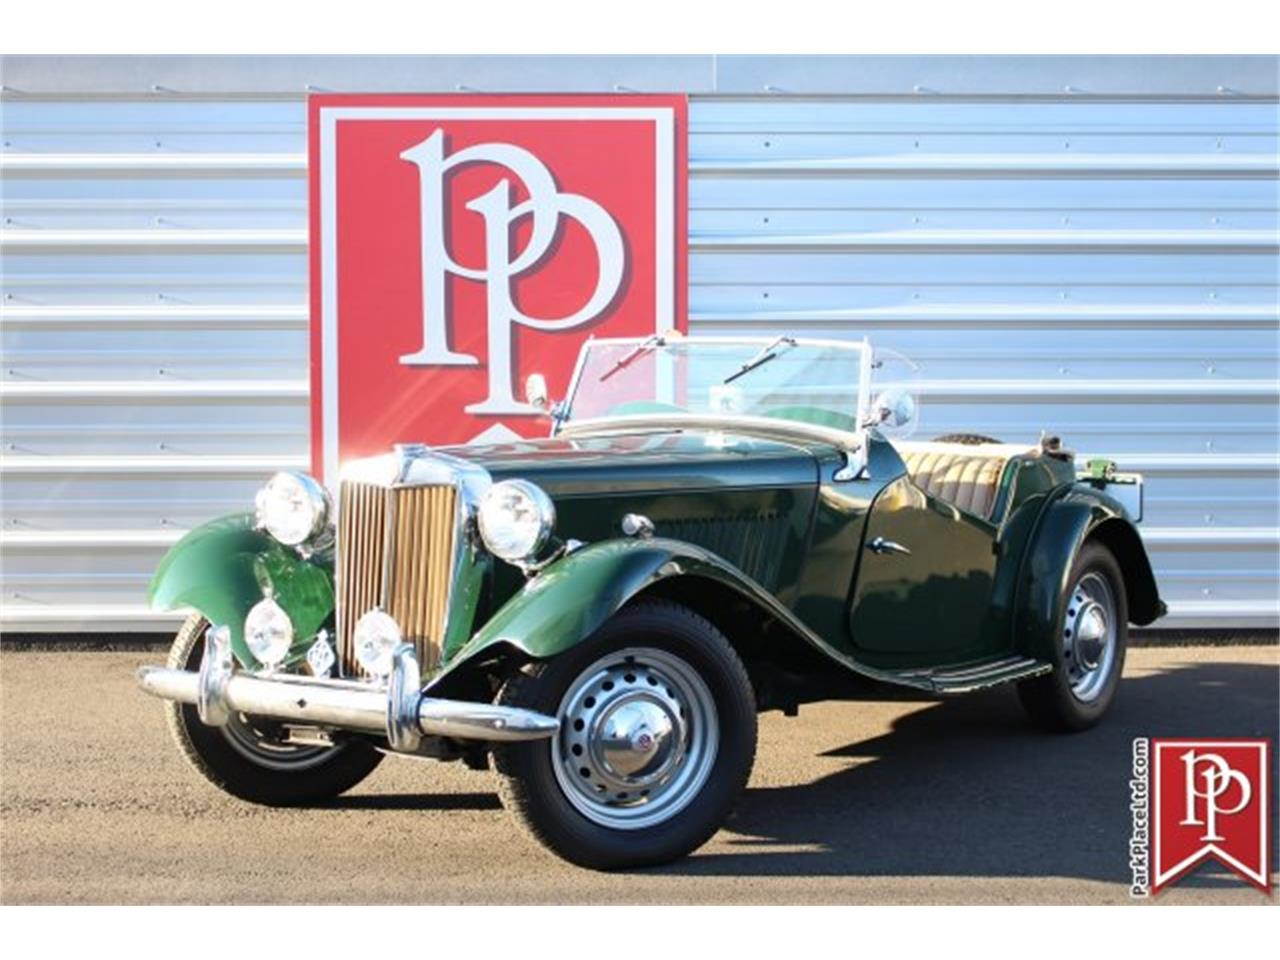 Large Picture of Classic 1951 TD located in Bellevue Washington Auction Vehicle Offered by Park Place Ltd - JXWU